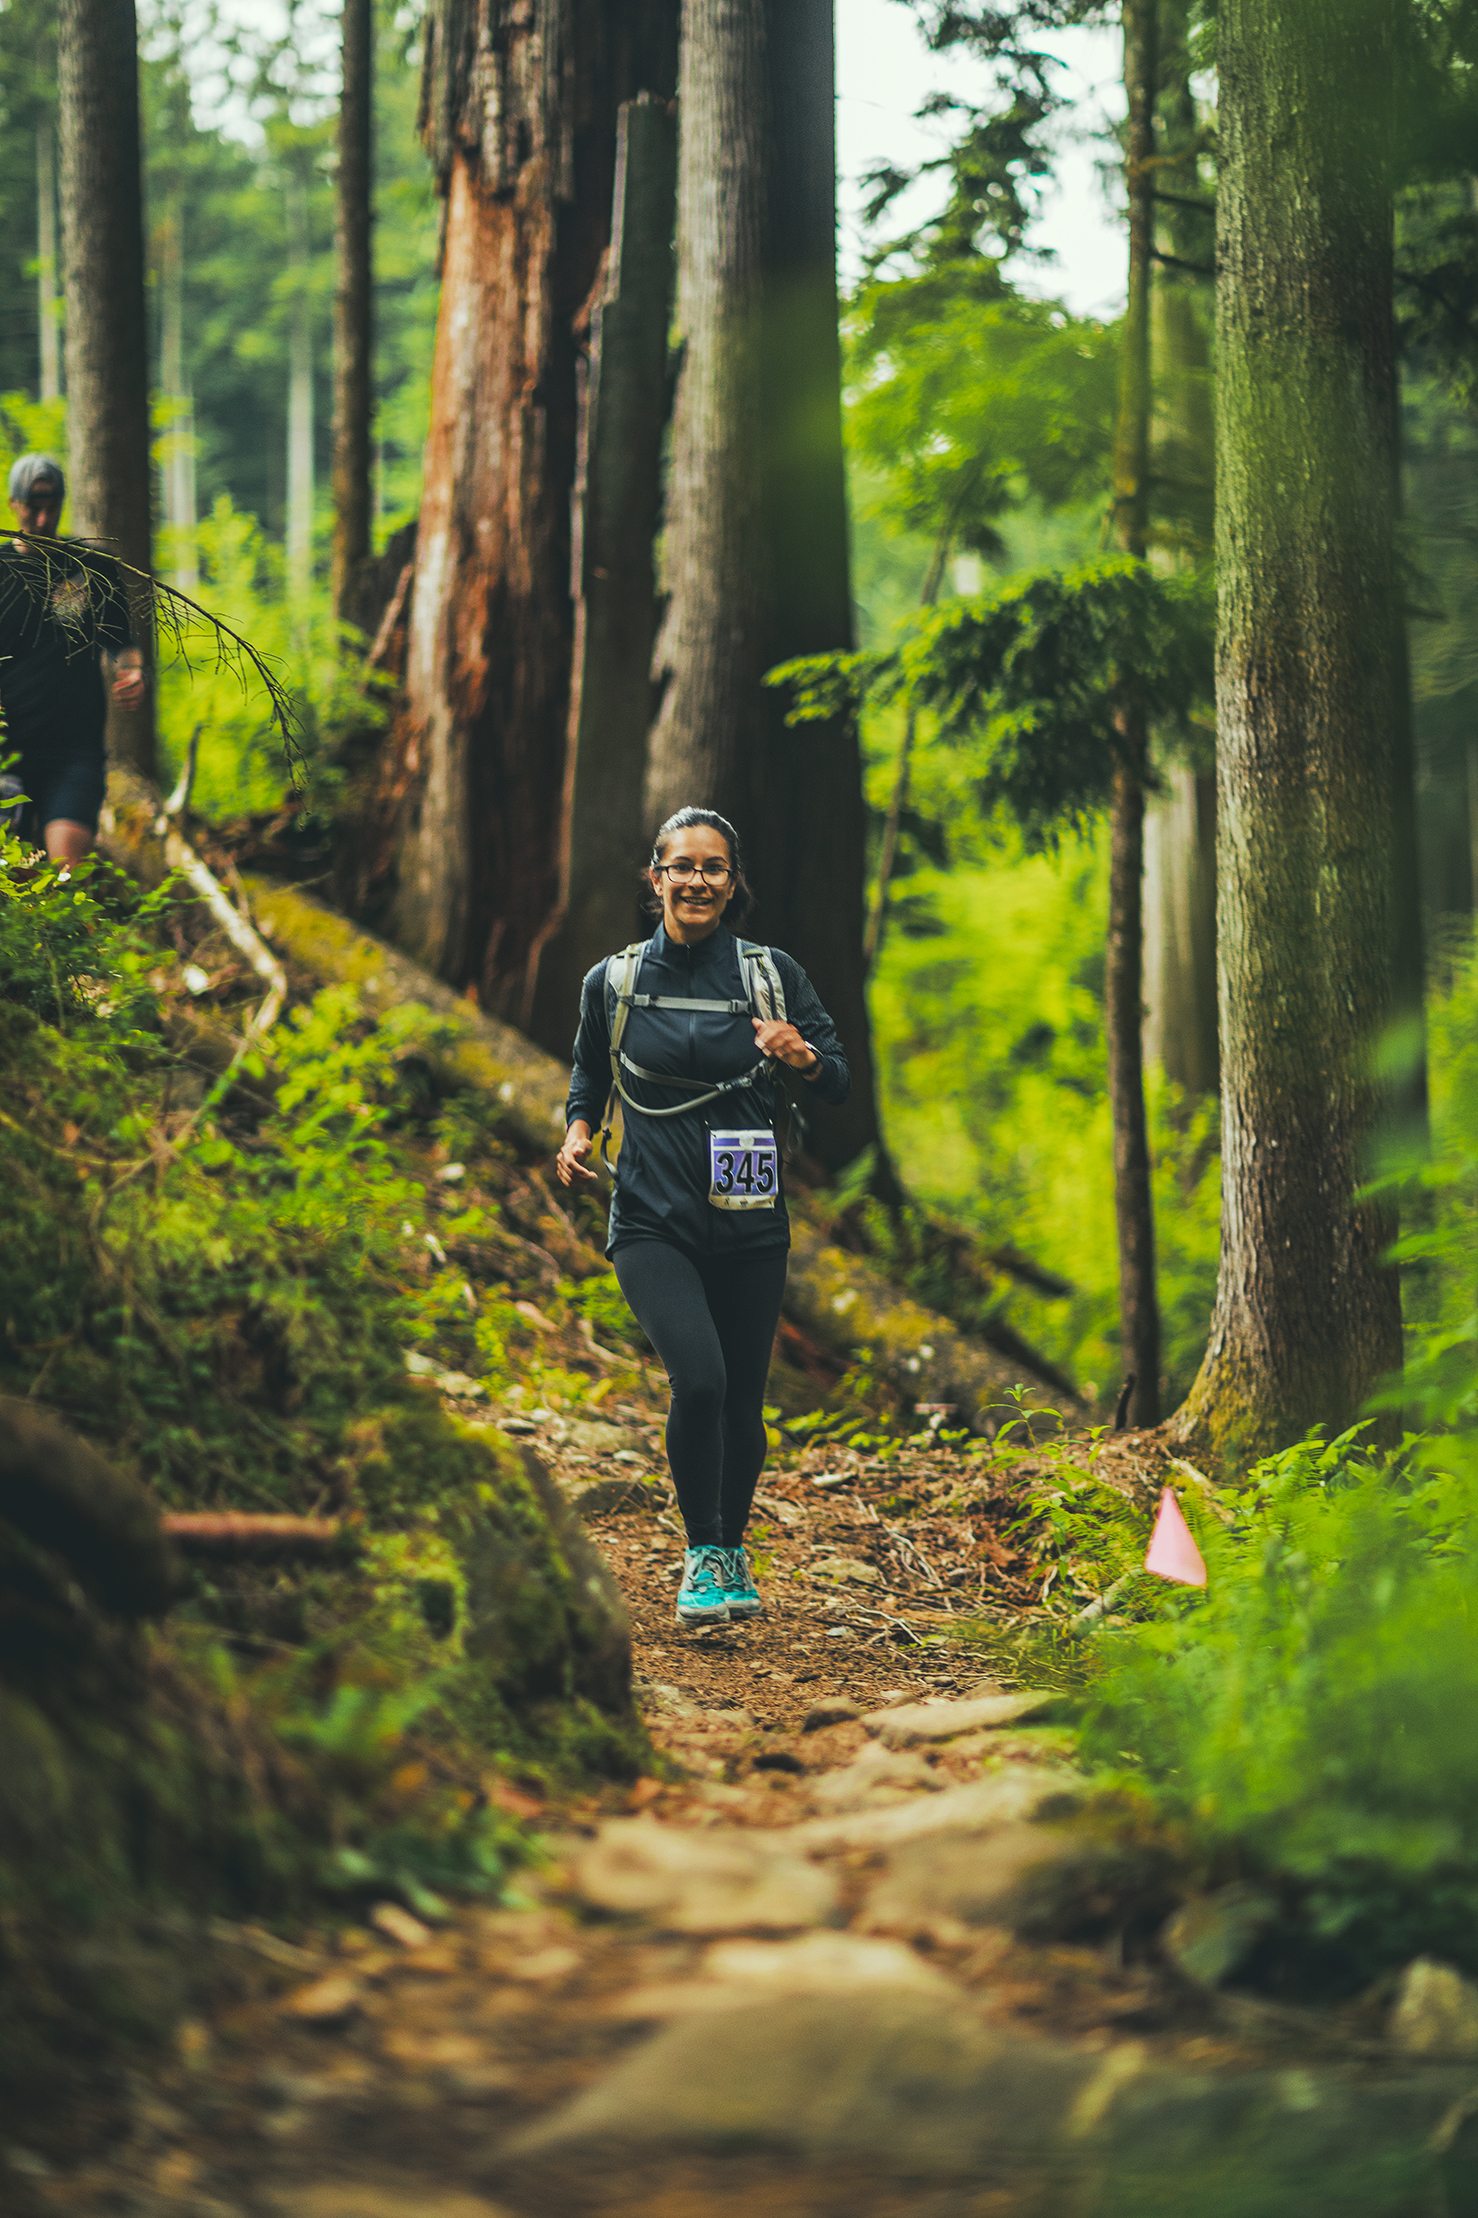 Fraser Valley Trail Races - Bear Mountain - IMG_1562 by Brice Ferre Studio - Vancouver Portrait Adventure and Athlete Photographer.jpg